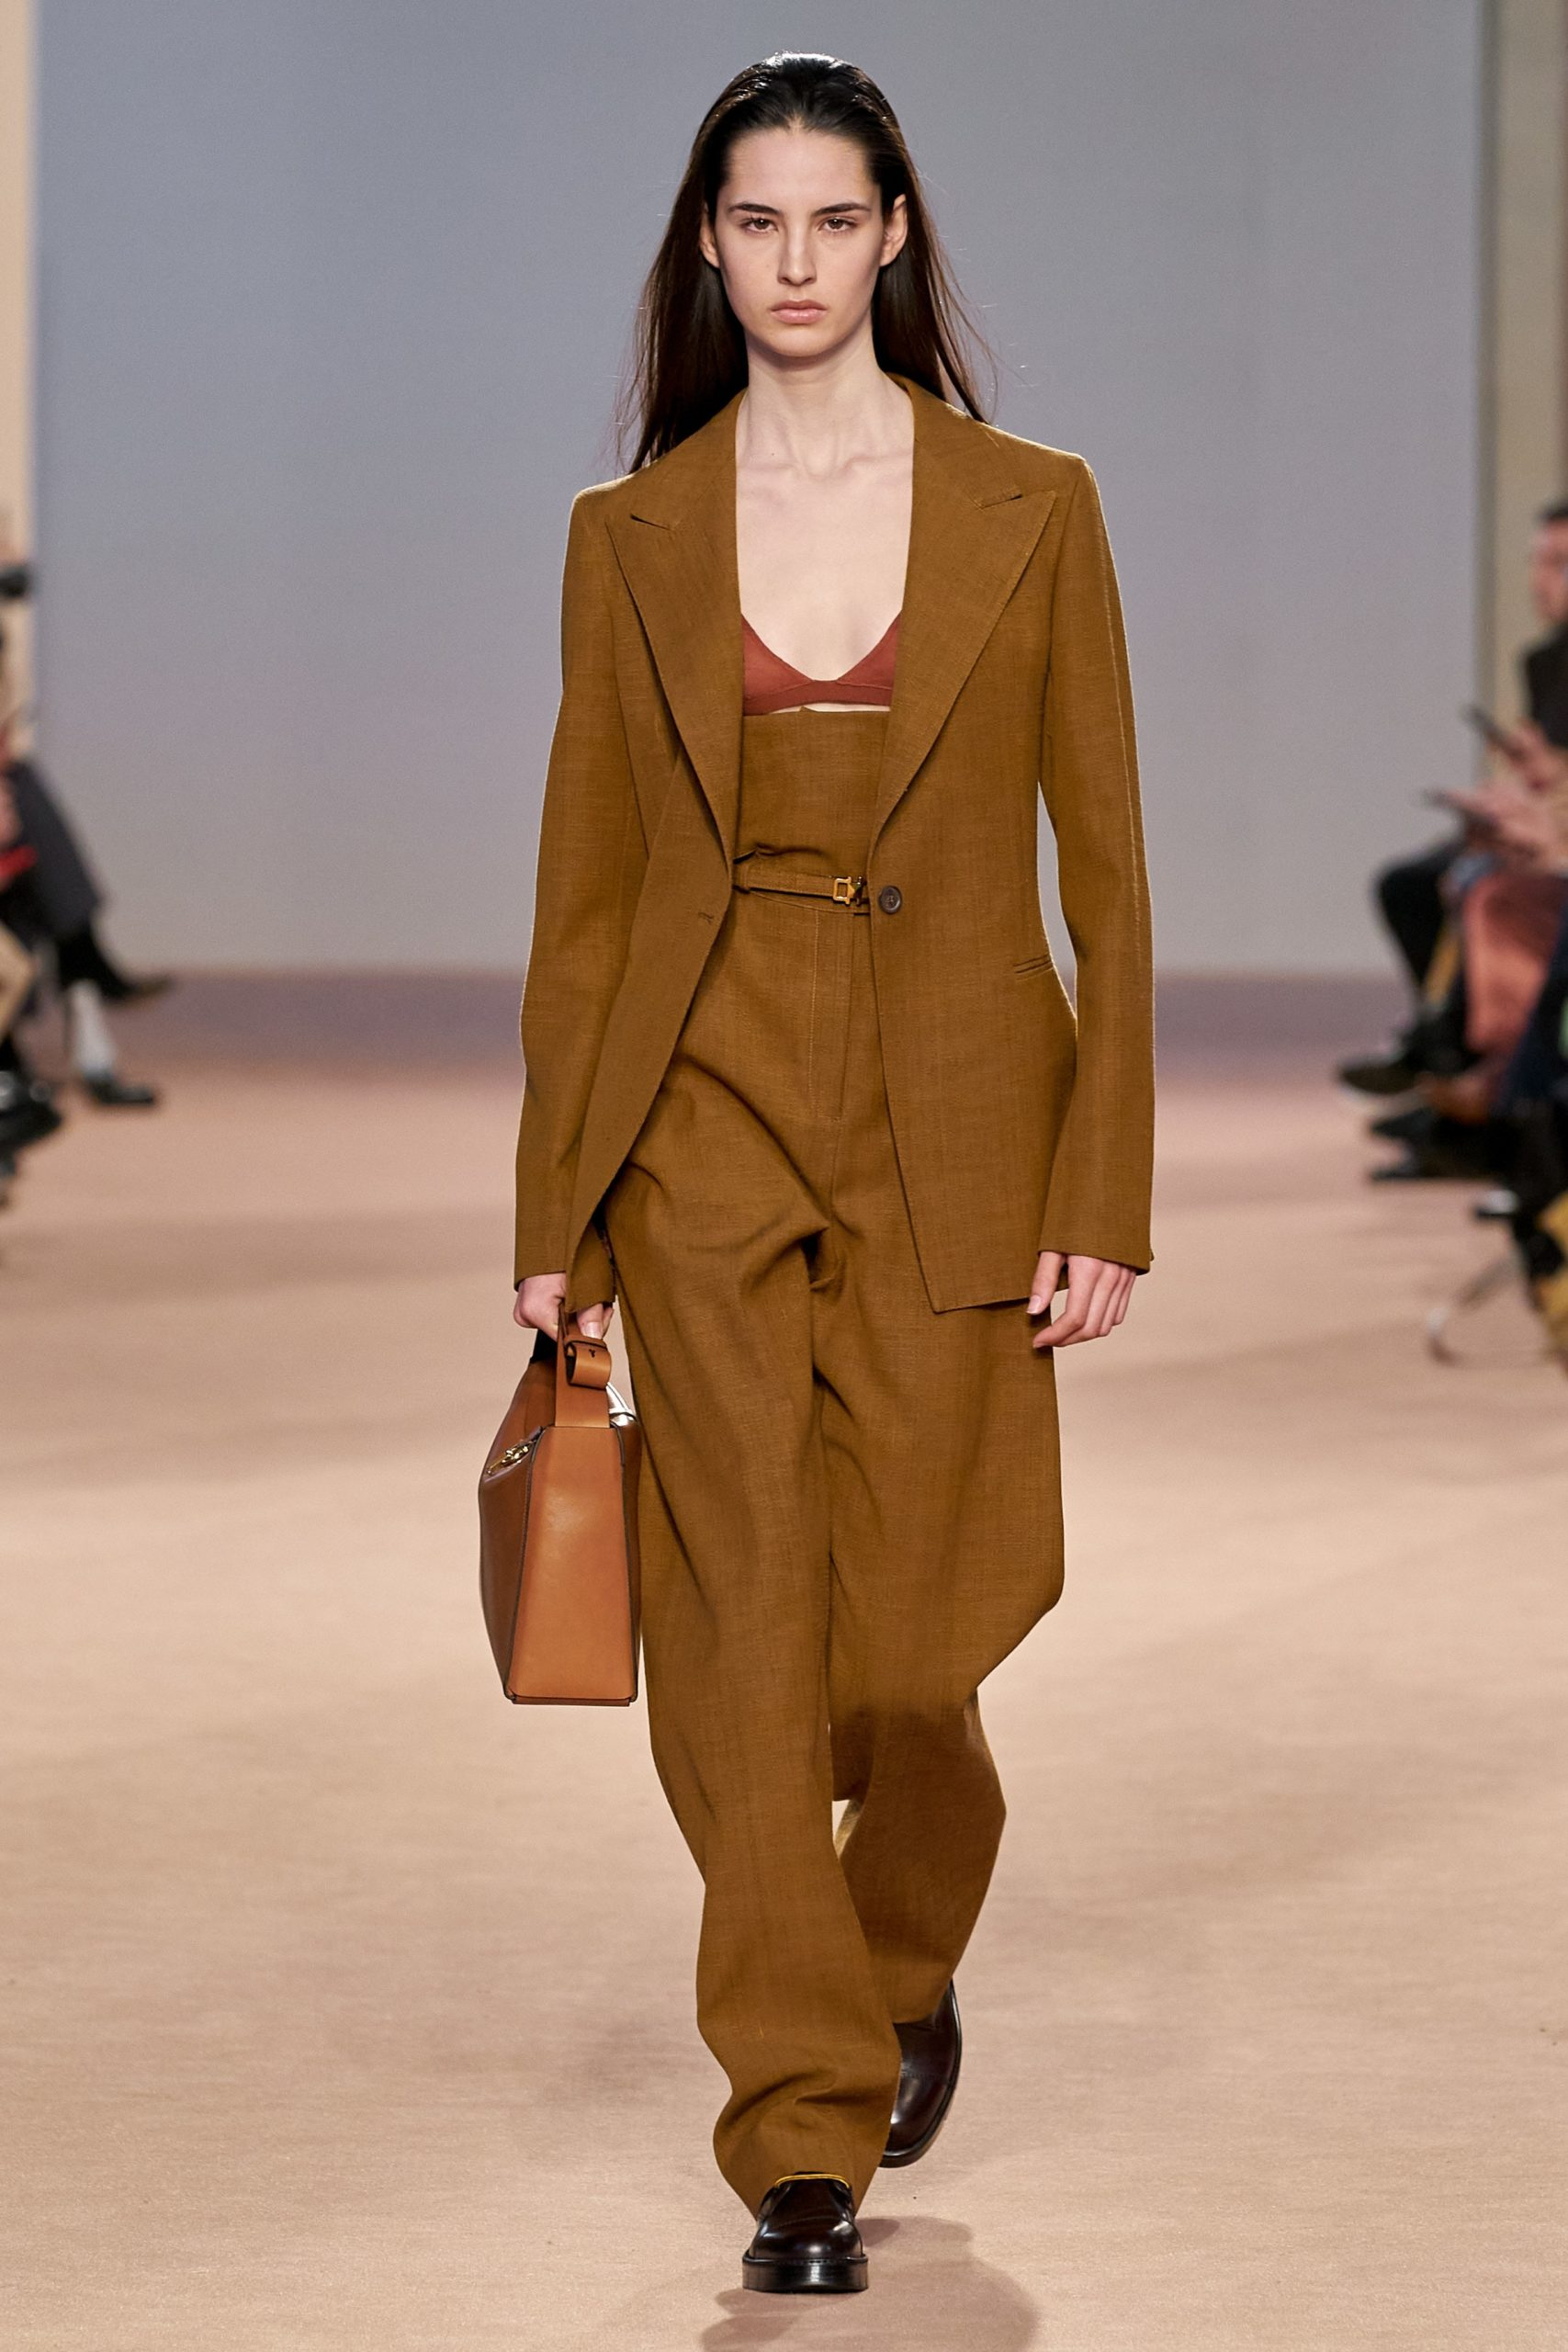 Ferragamo Fall 2020 trends runway coverage Ready To Wear Vogue caramel monochrome